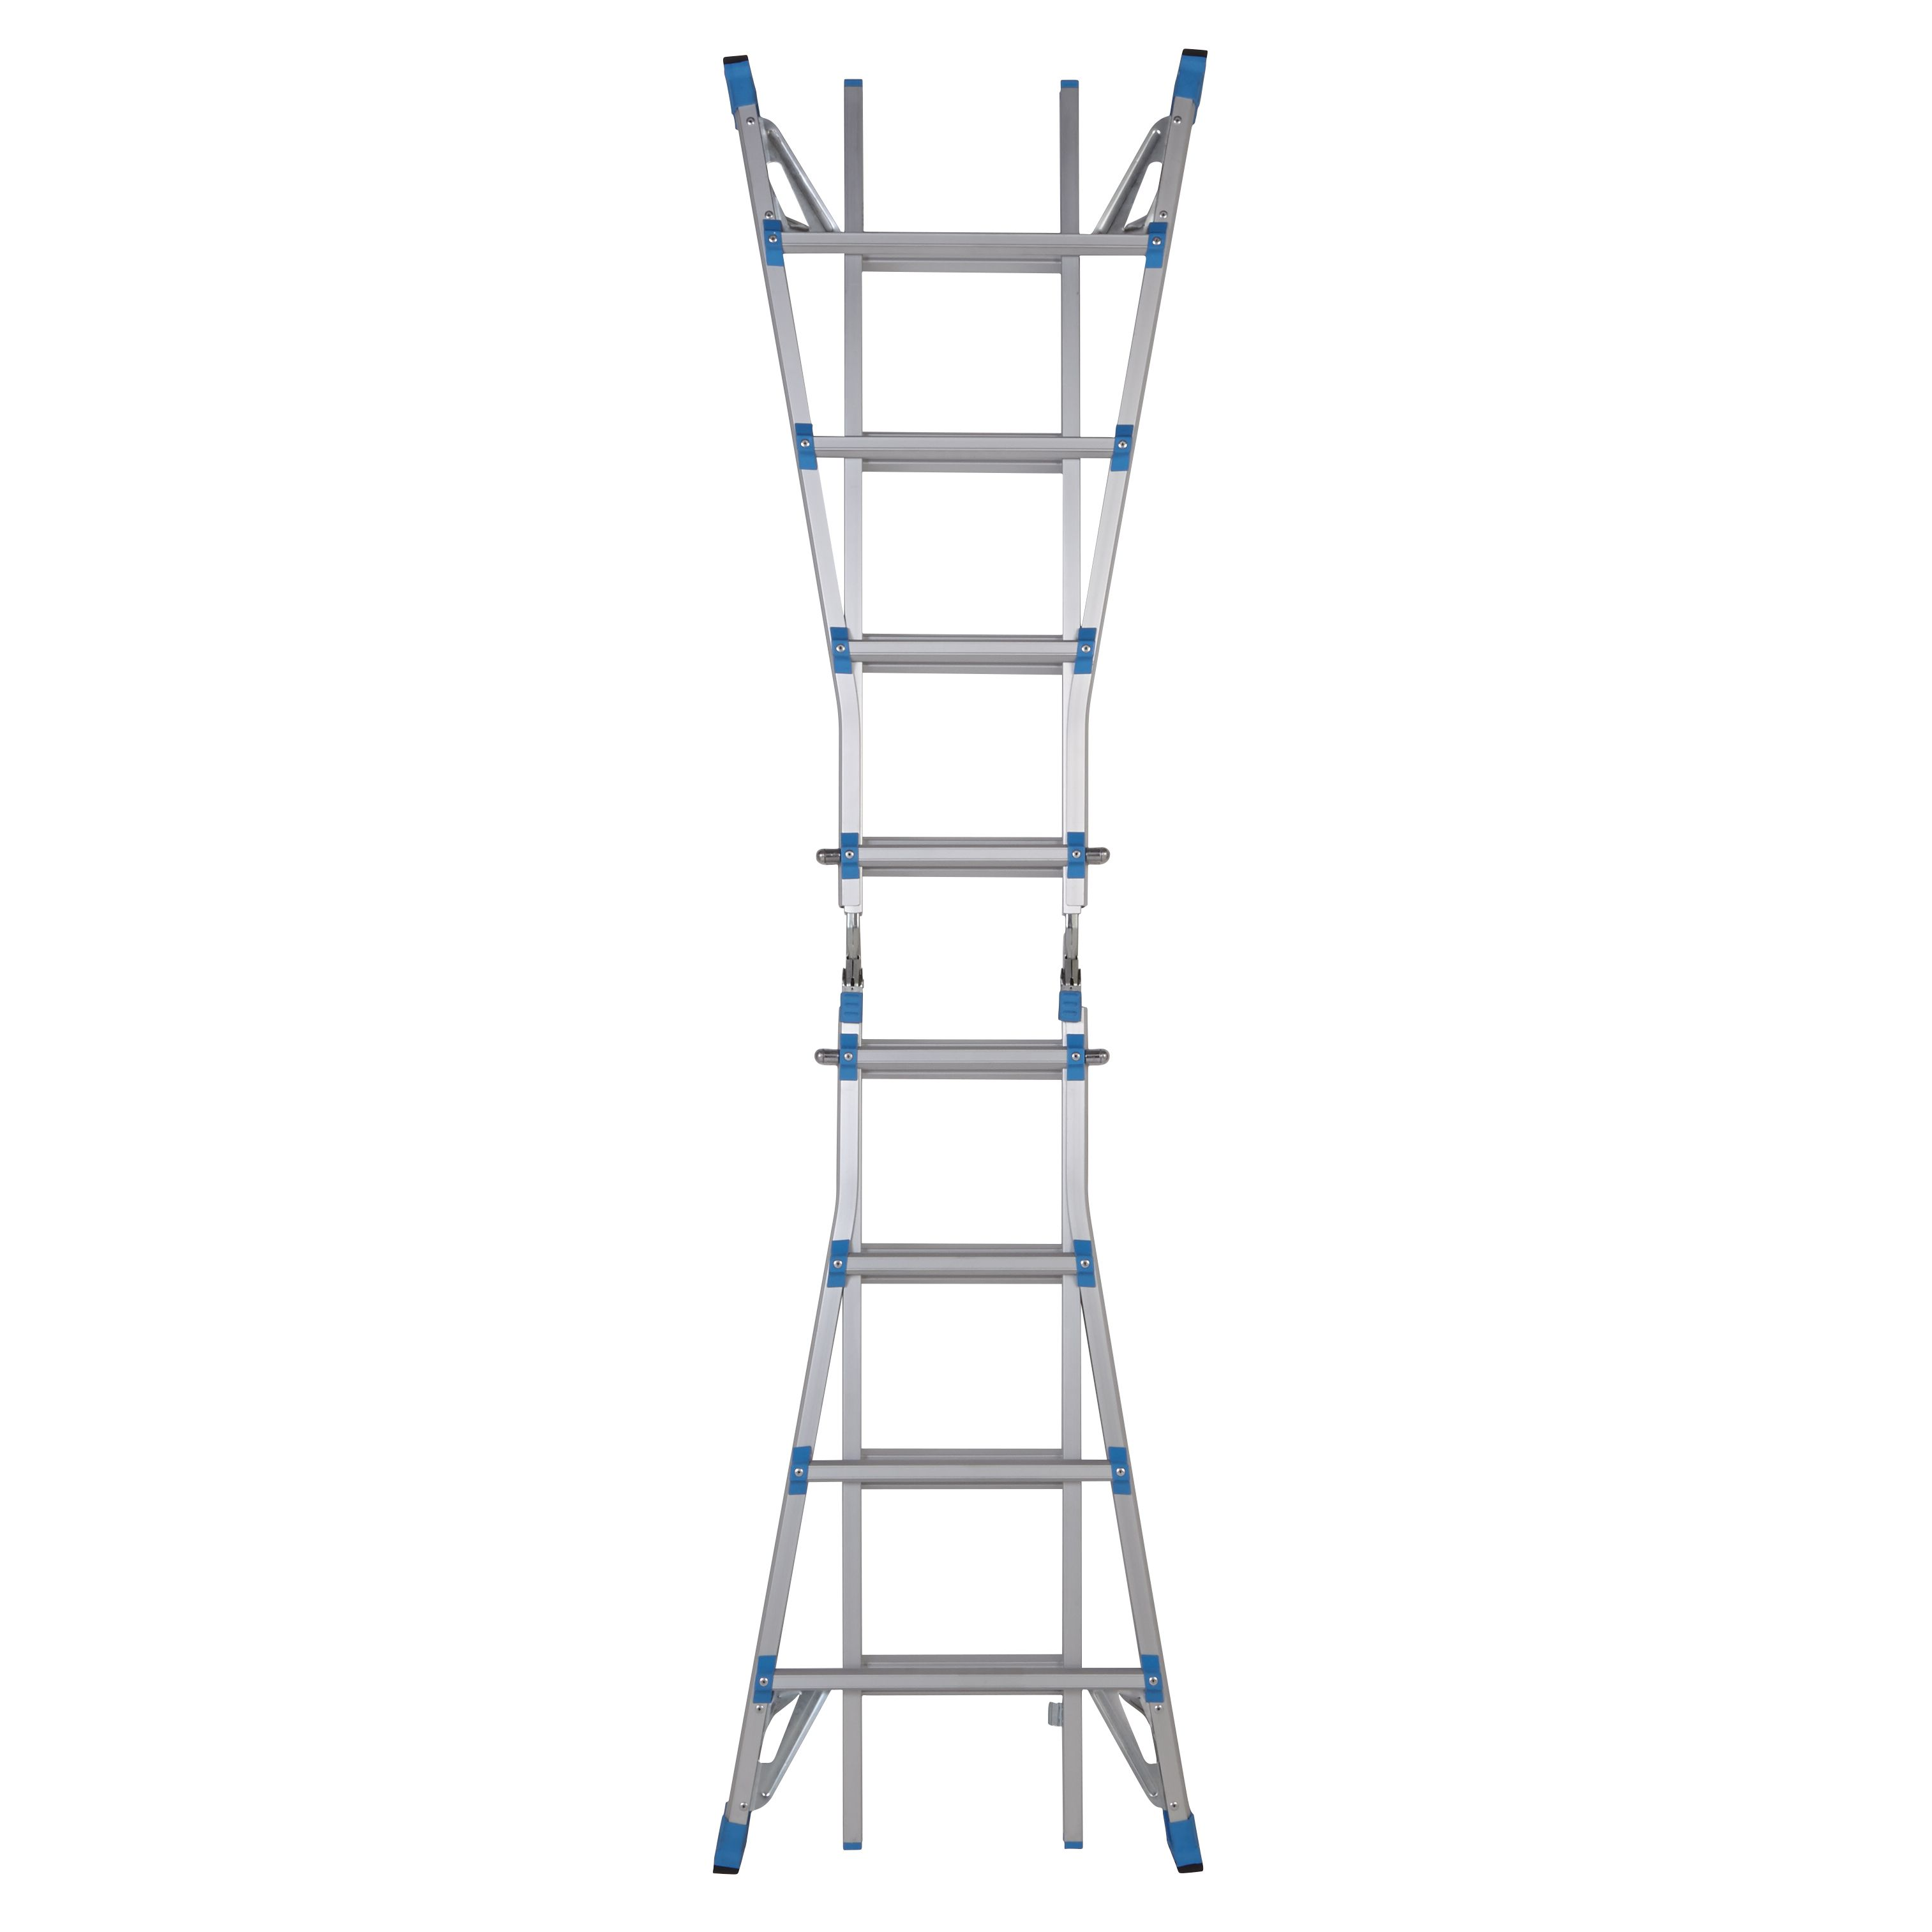 How To Use A Telescopic Ladder